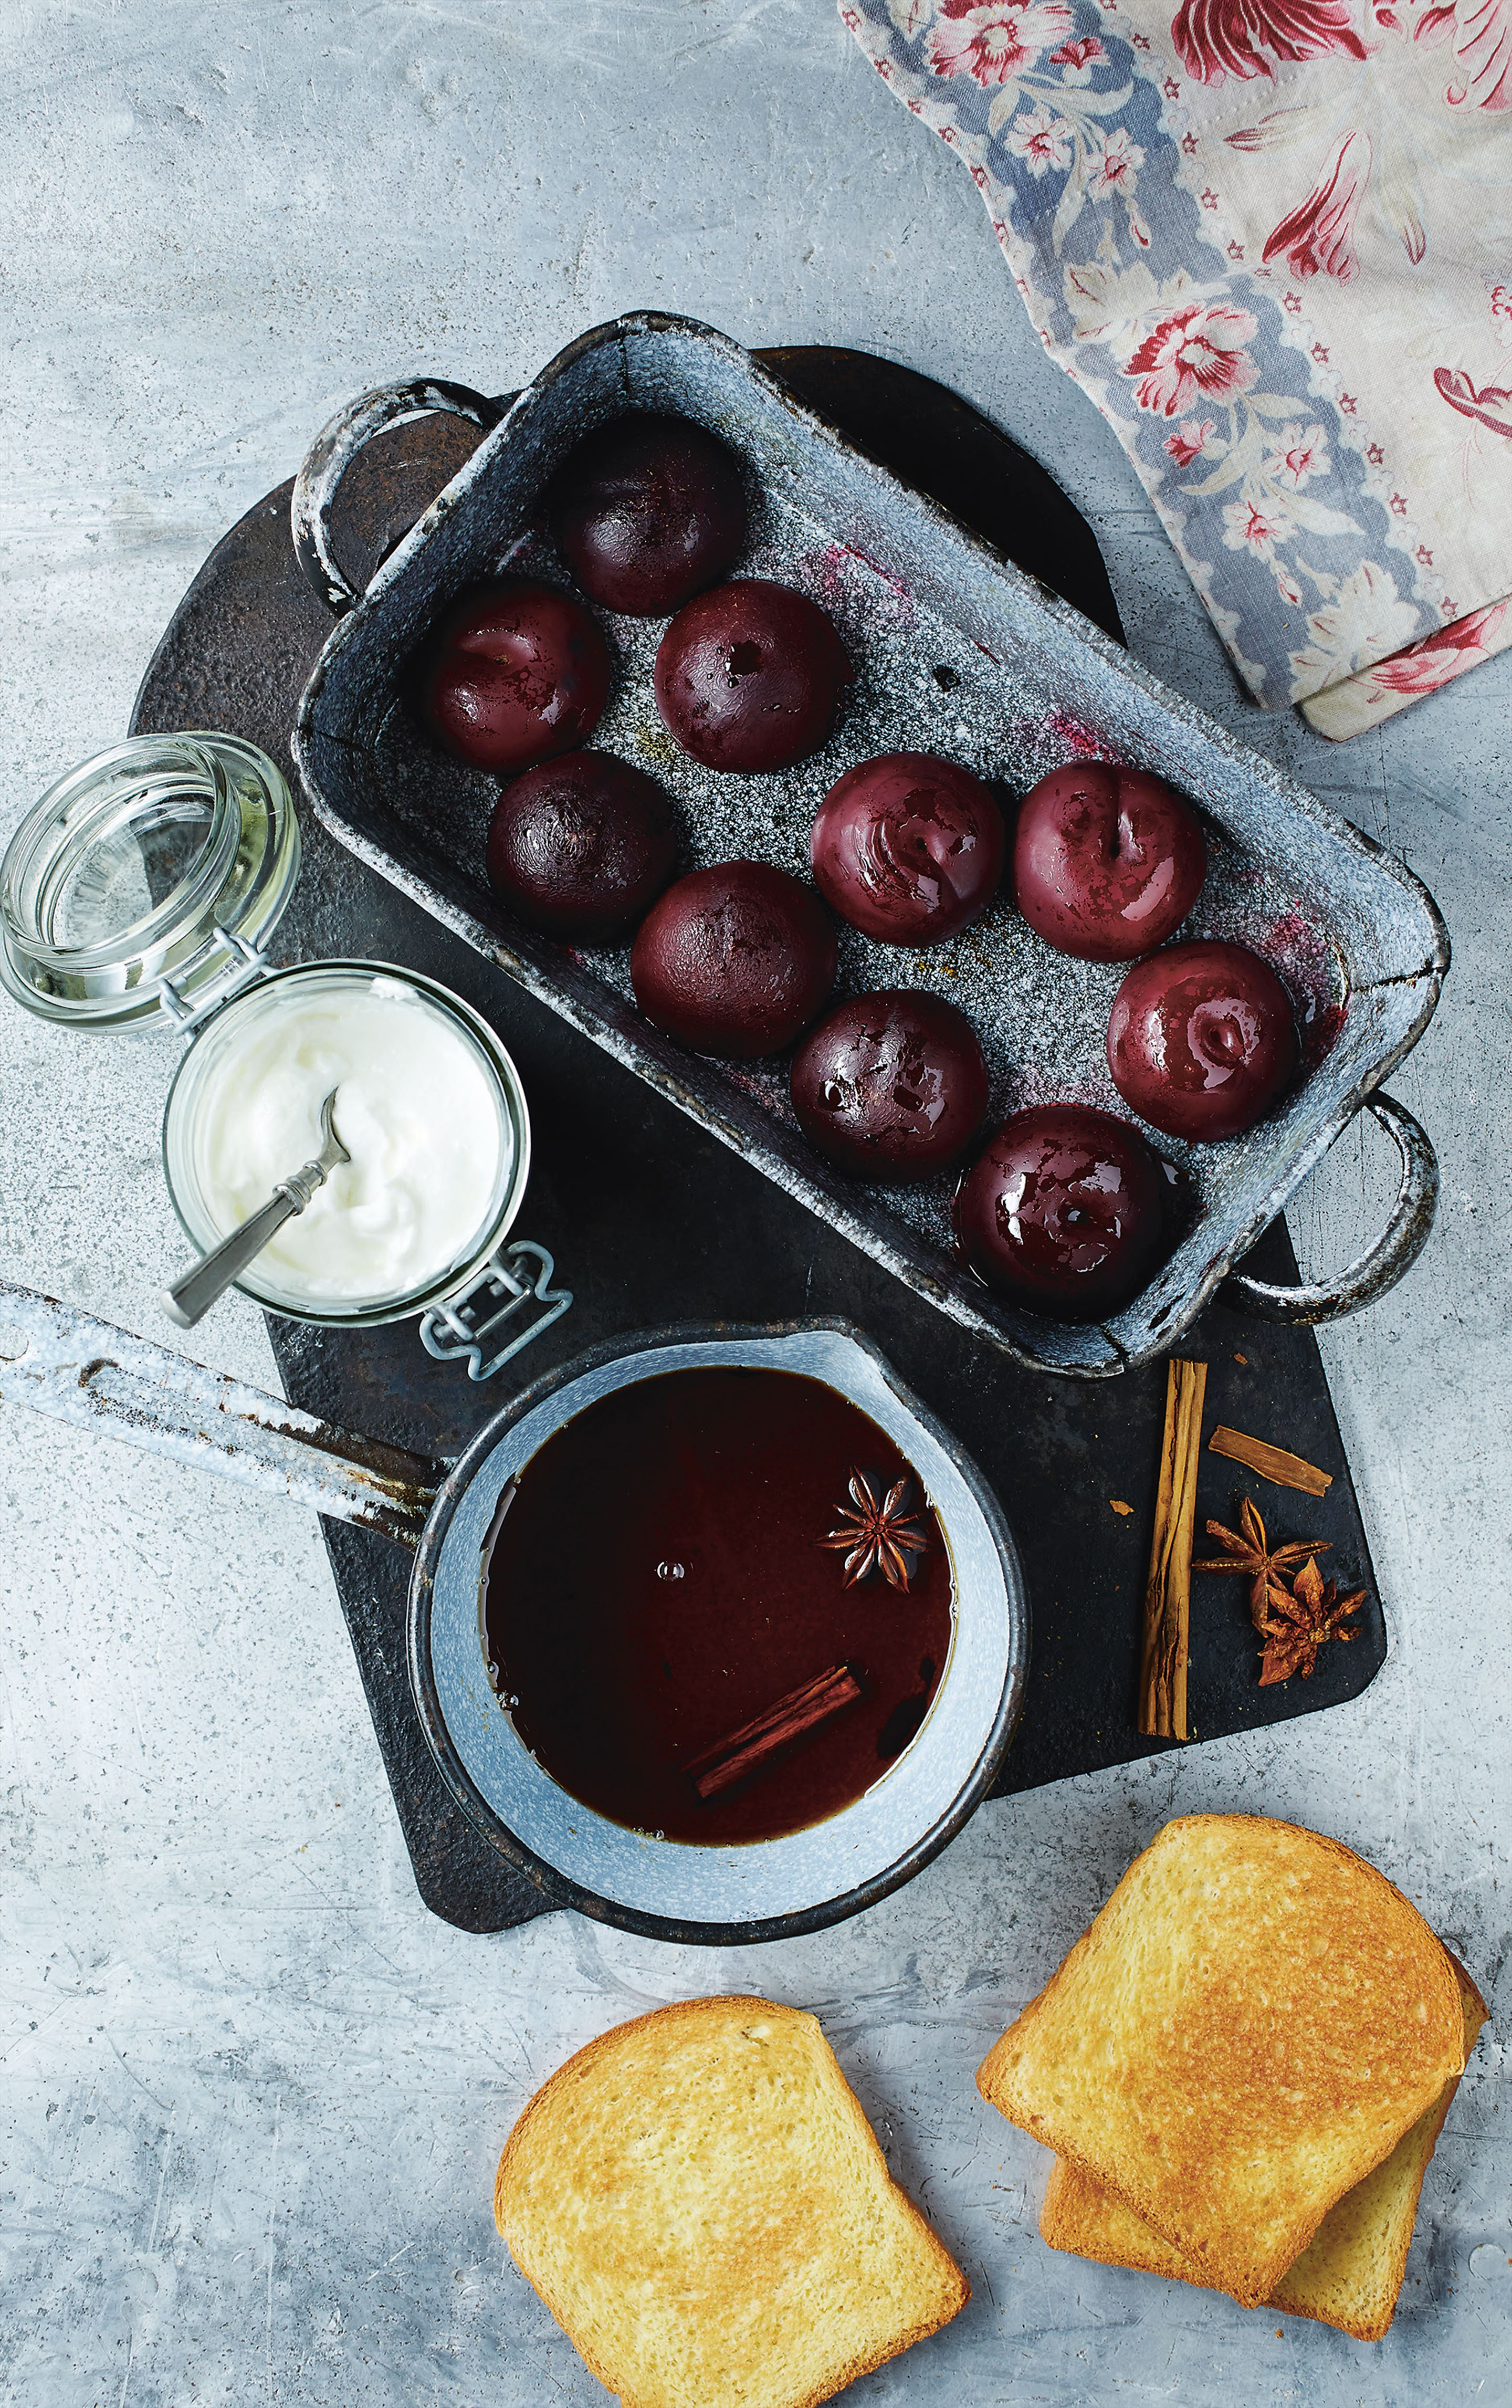 Spiced plums with yoghurt on toasted brioche